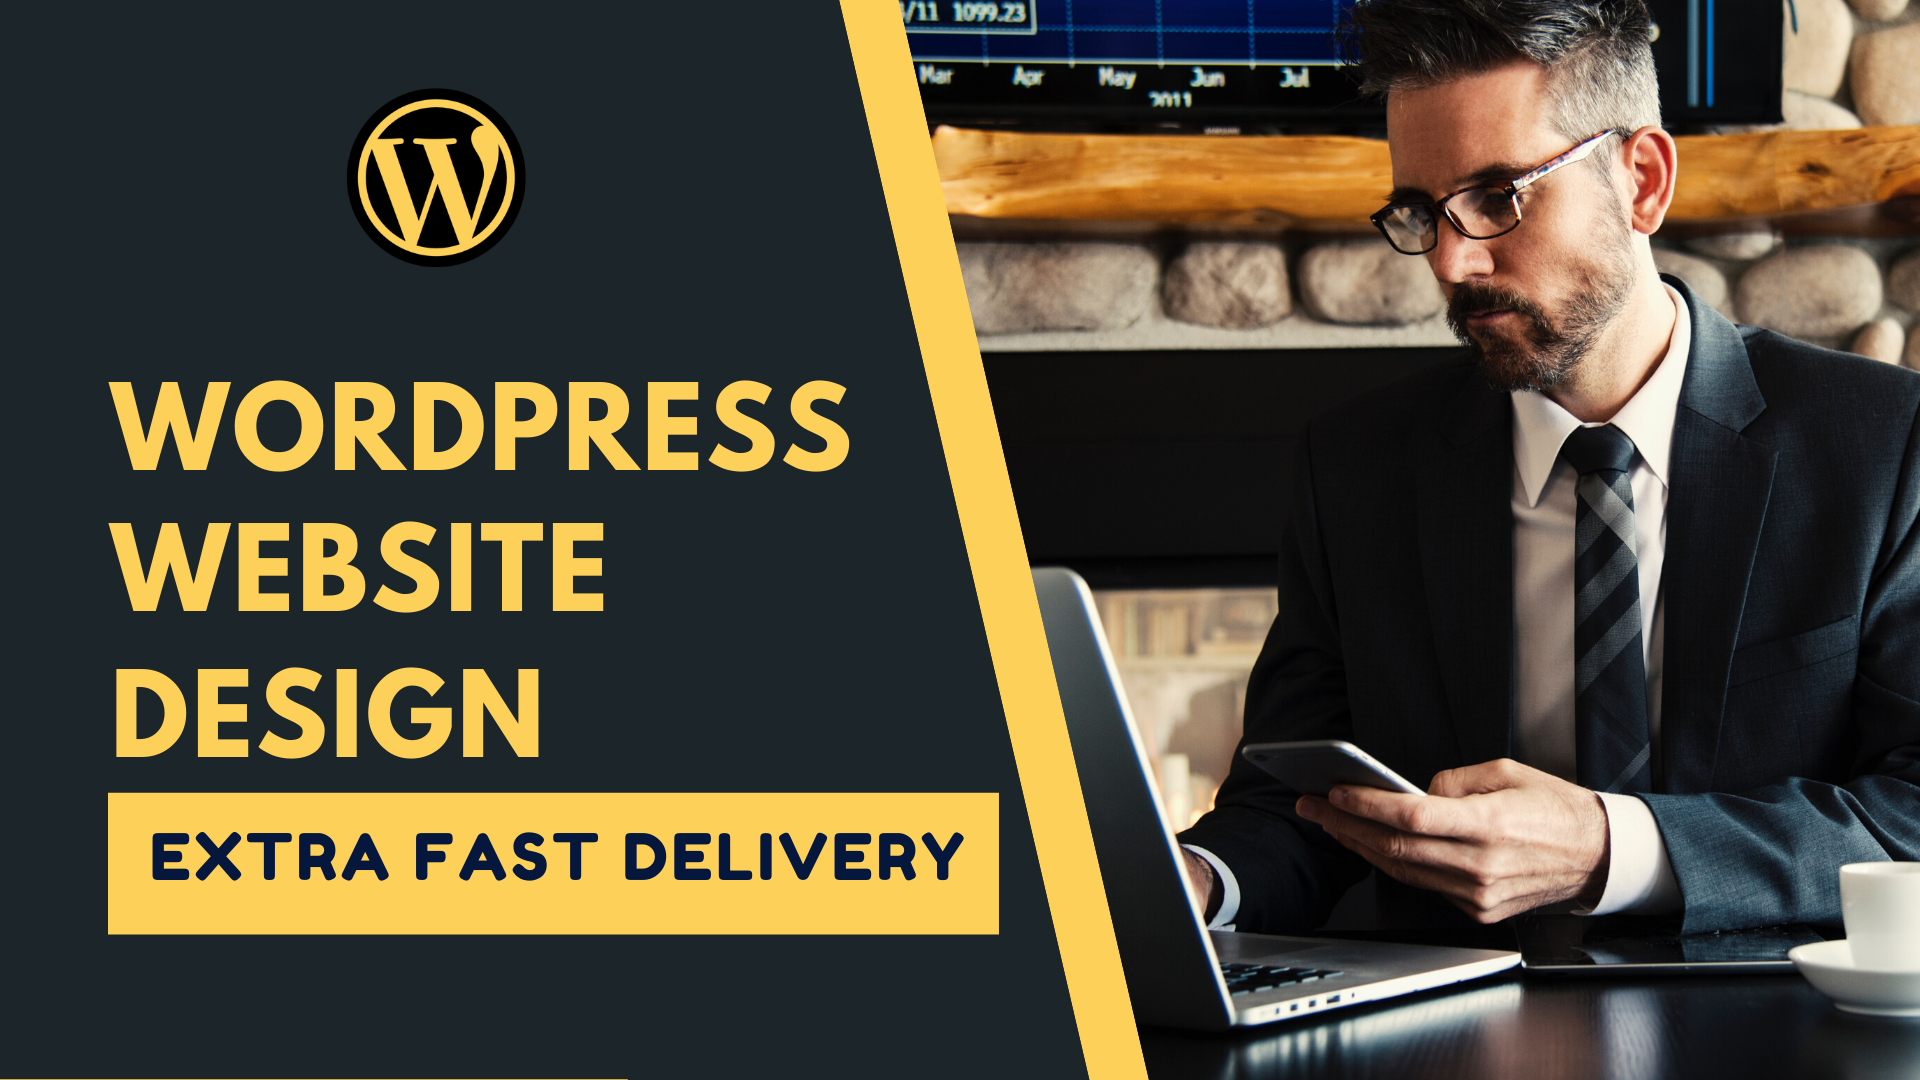 I will design professional and fully responsive wordpress website